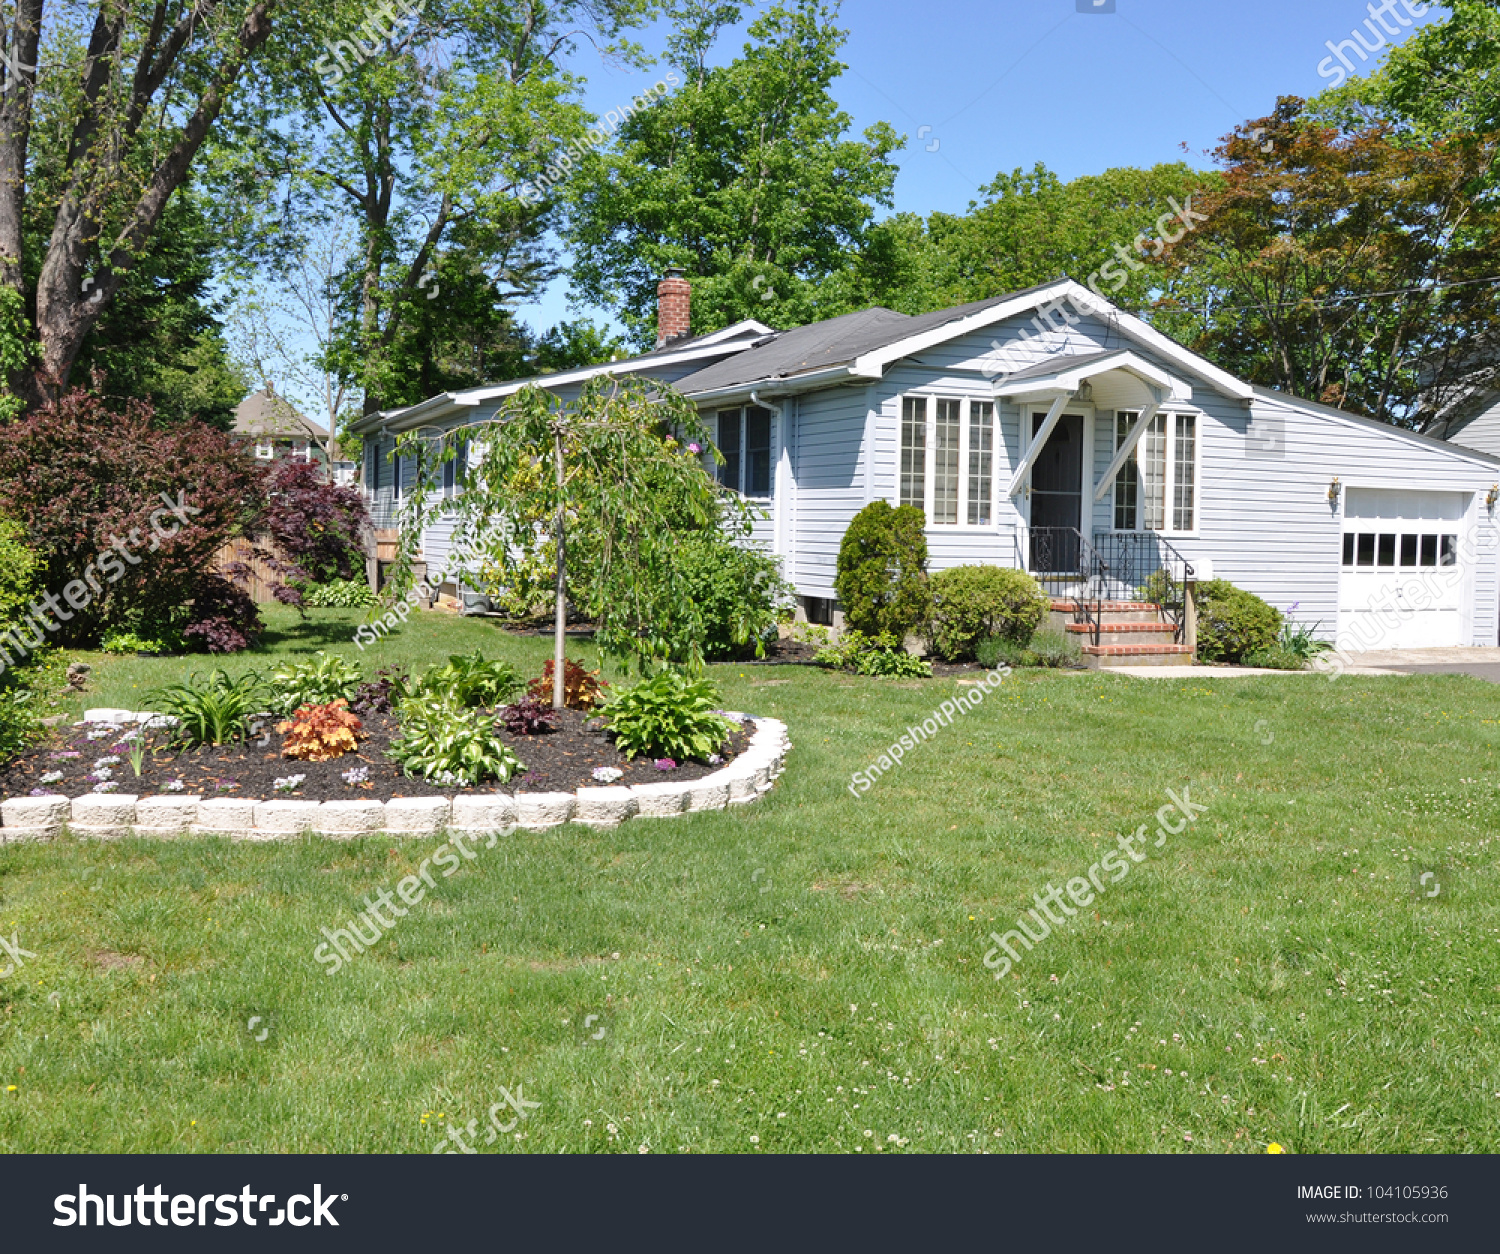 Beautiful Landscaped Suburban Cottage Style Home Stock